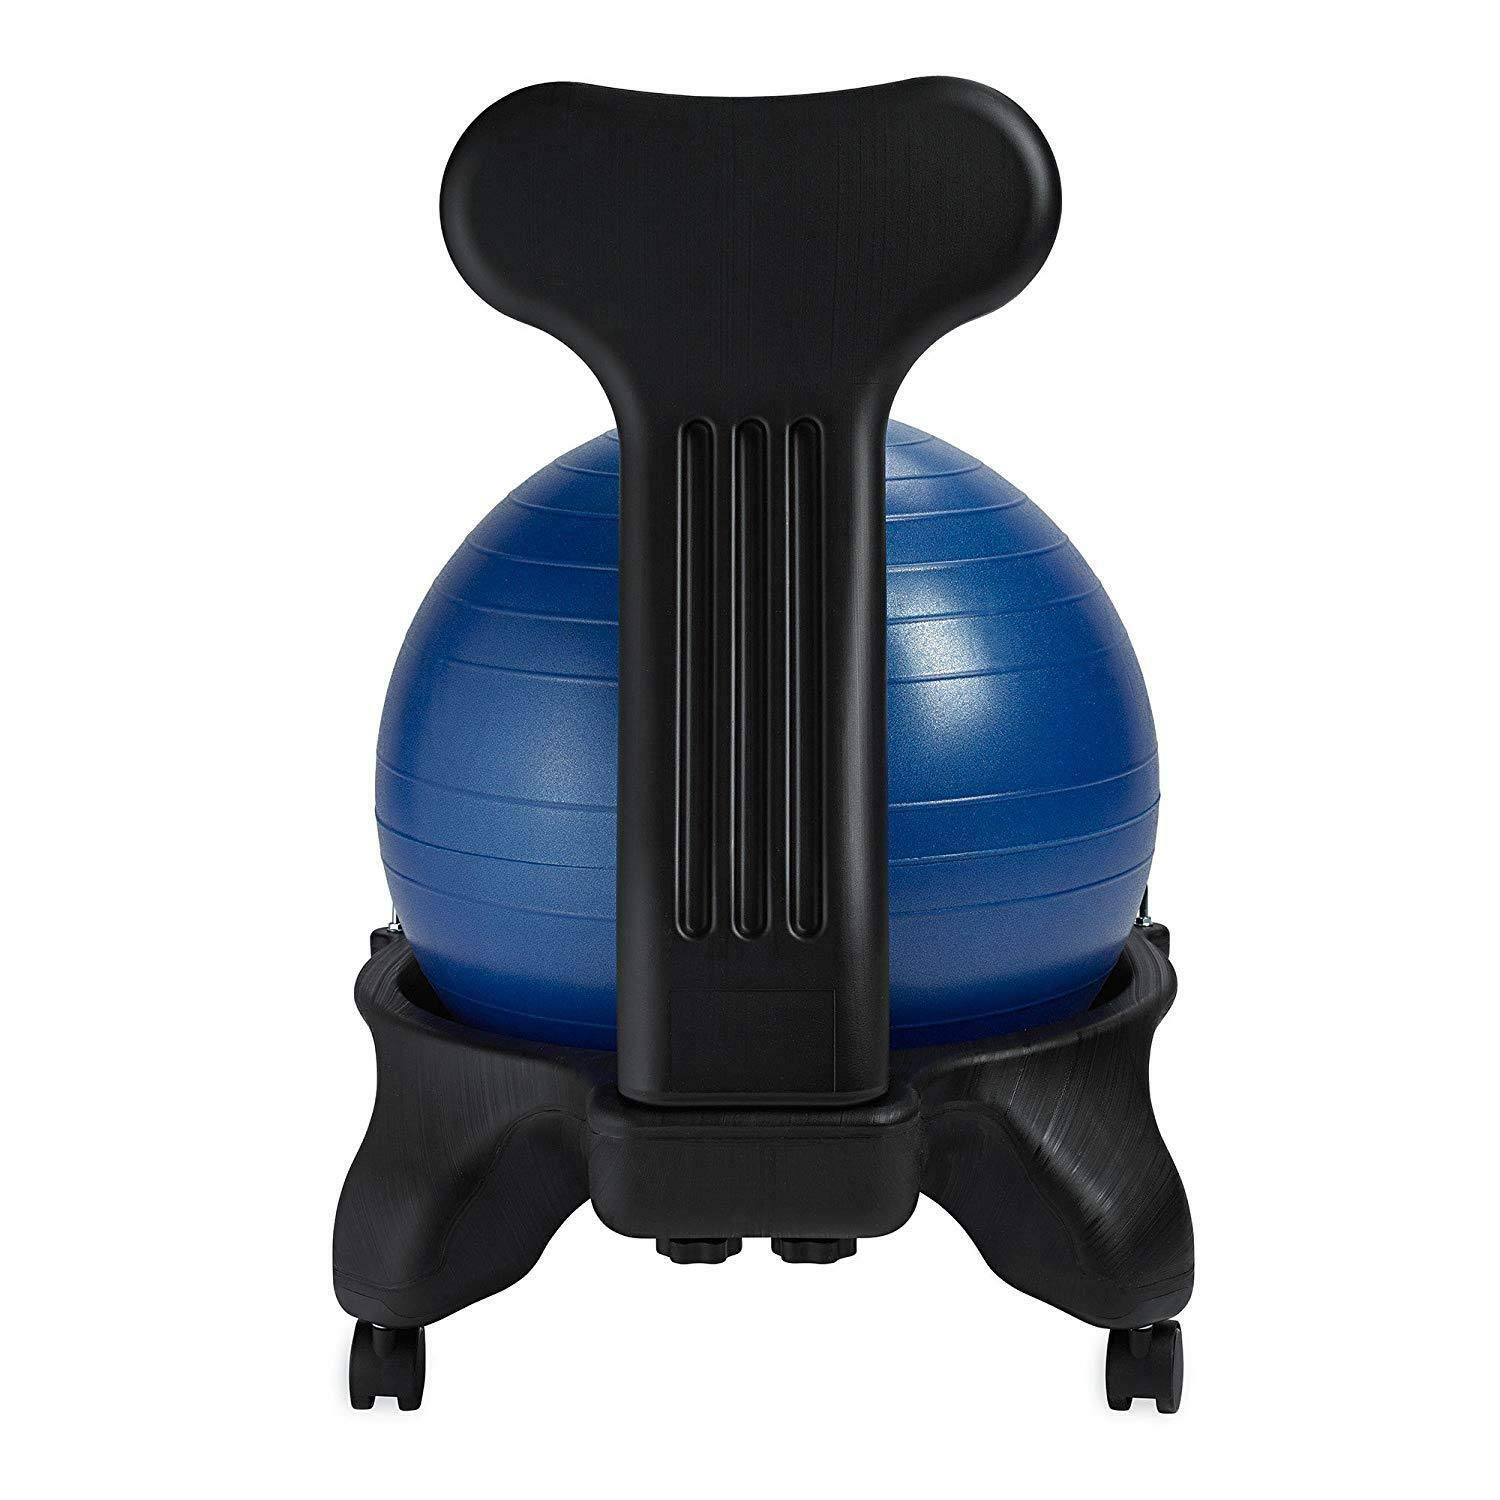 MRT SUPPLY Classic Gym Yoga Exercise Fitness Balance Ball Office Desk Chair, Blue with Ebook